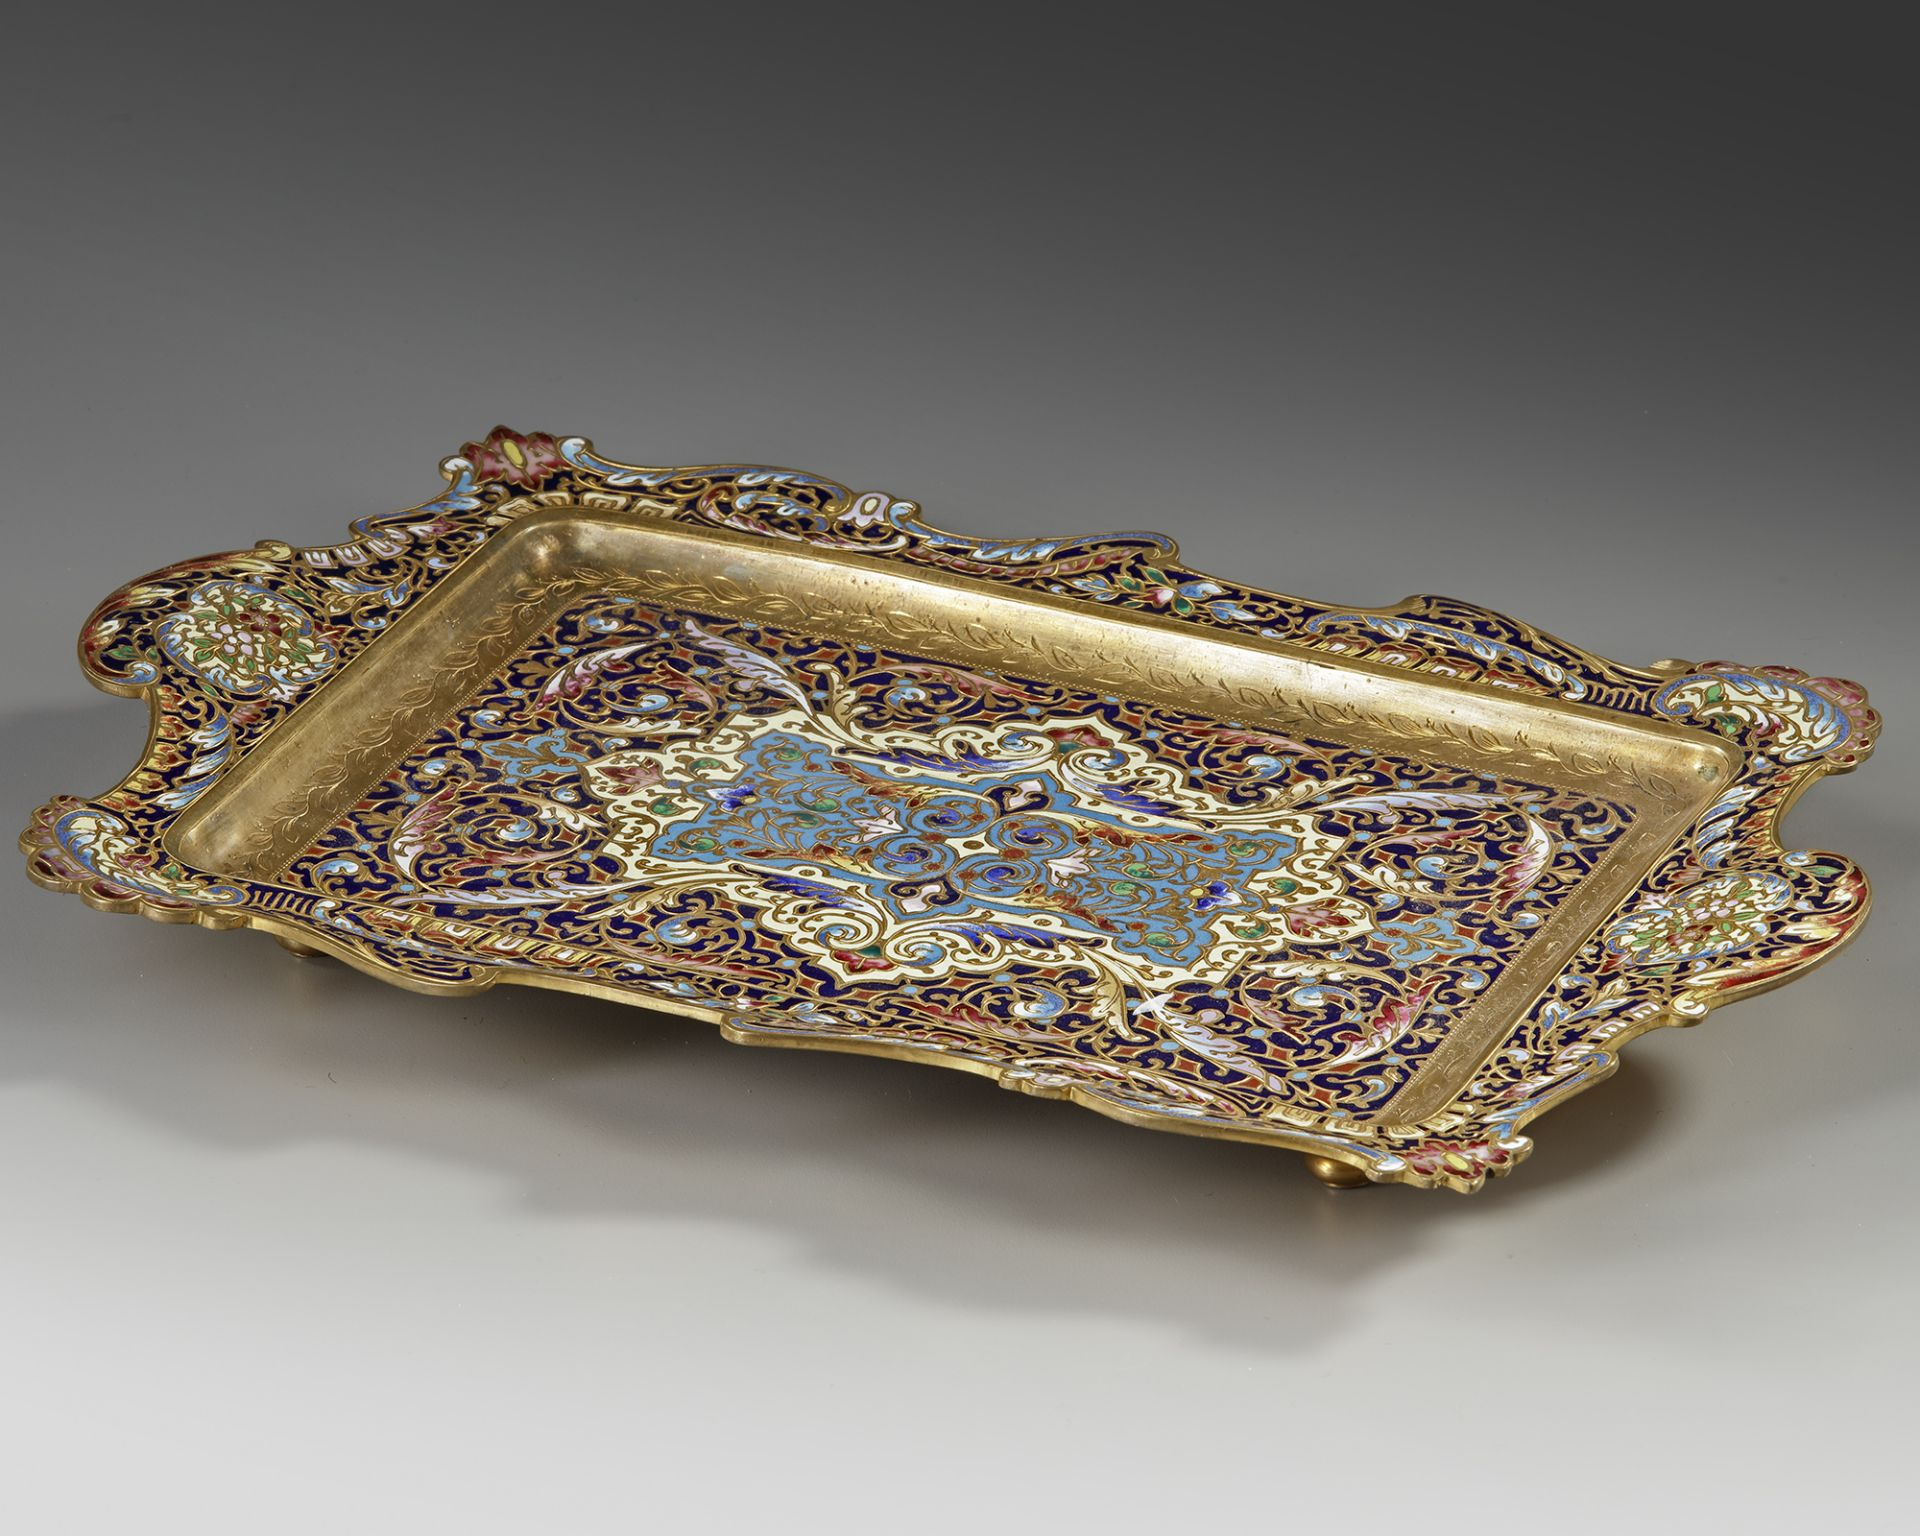 A FRENCH GILT ENAMEL ORMOLU CHAMPLEVÉ DRESSER STAND, 19TH CENTURY - Image 2 of 3